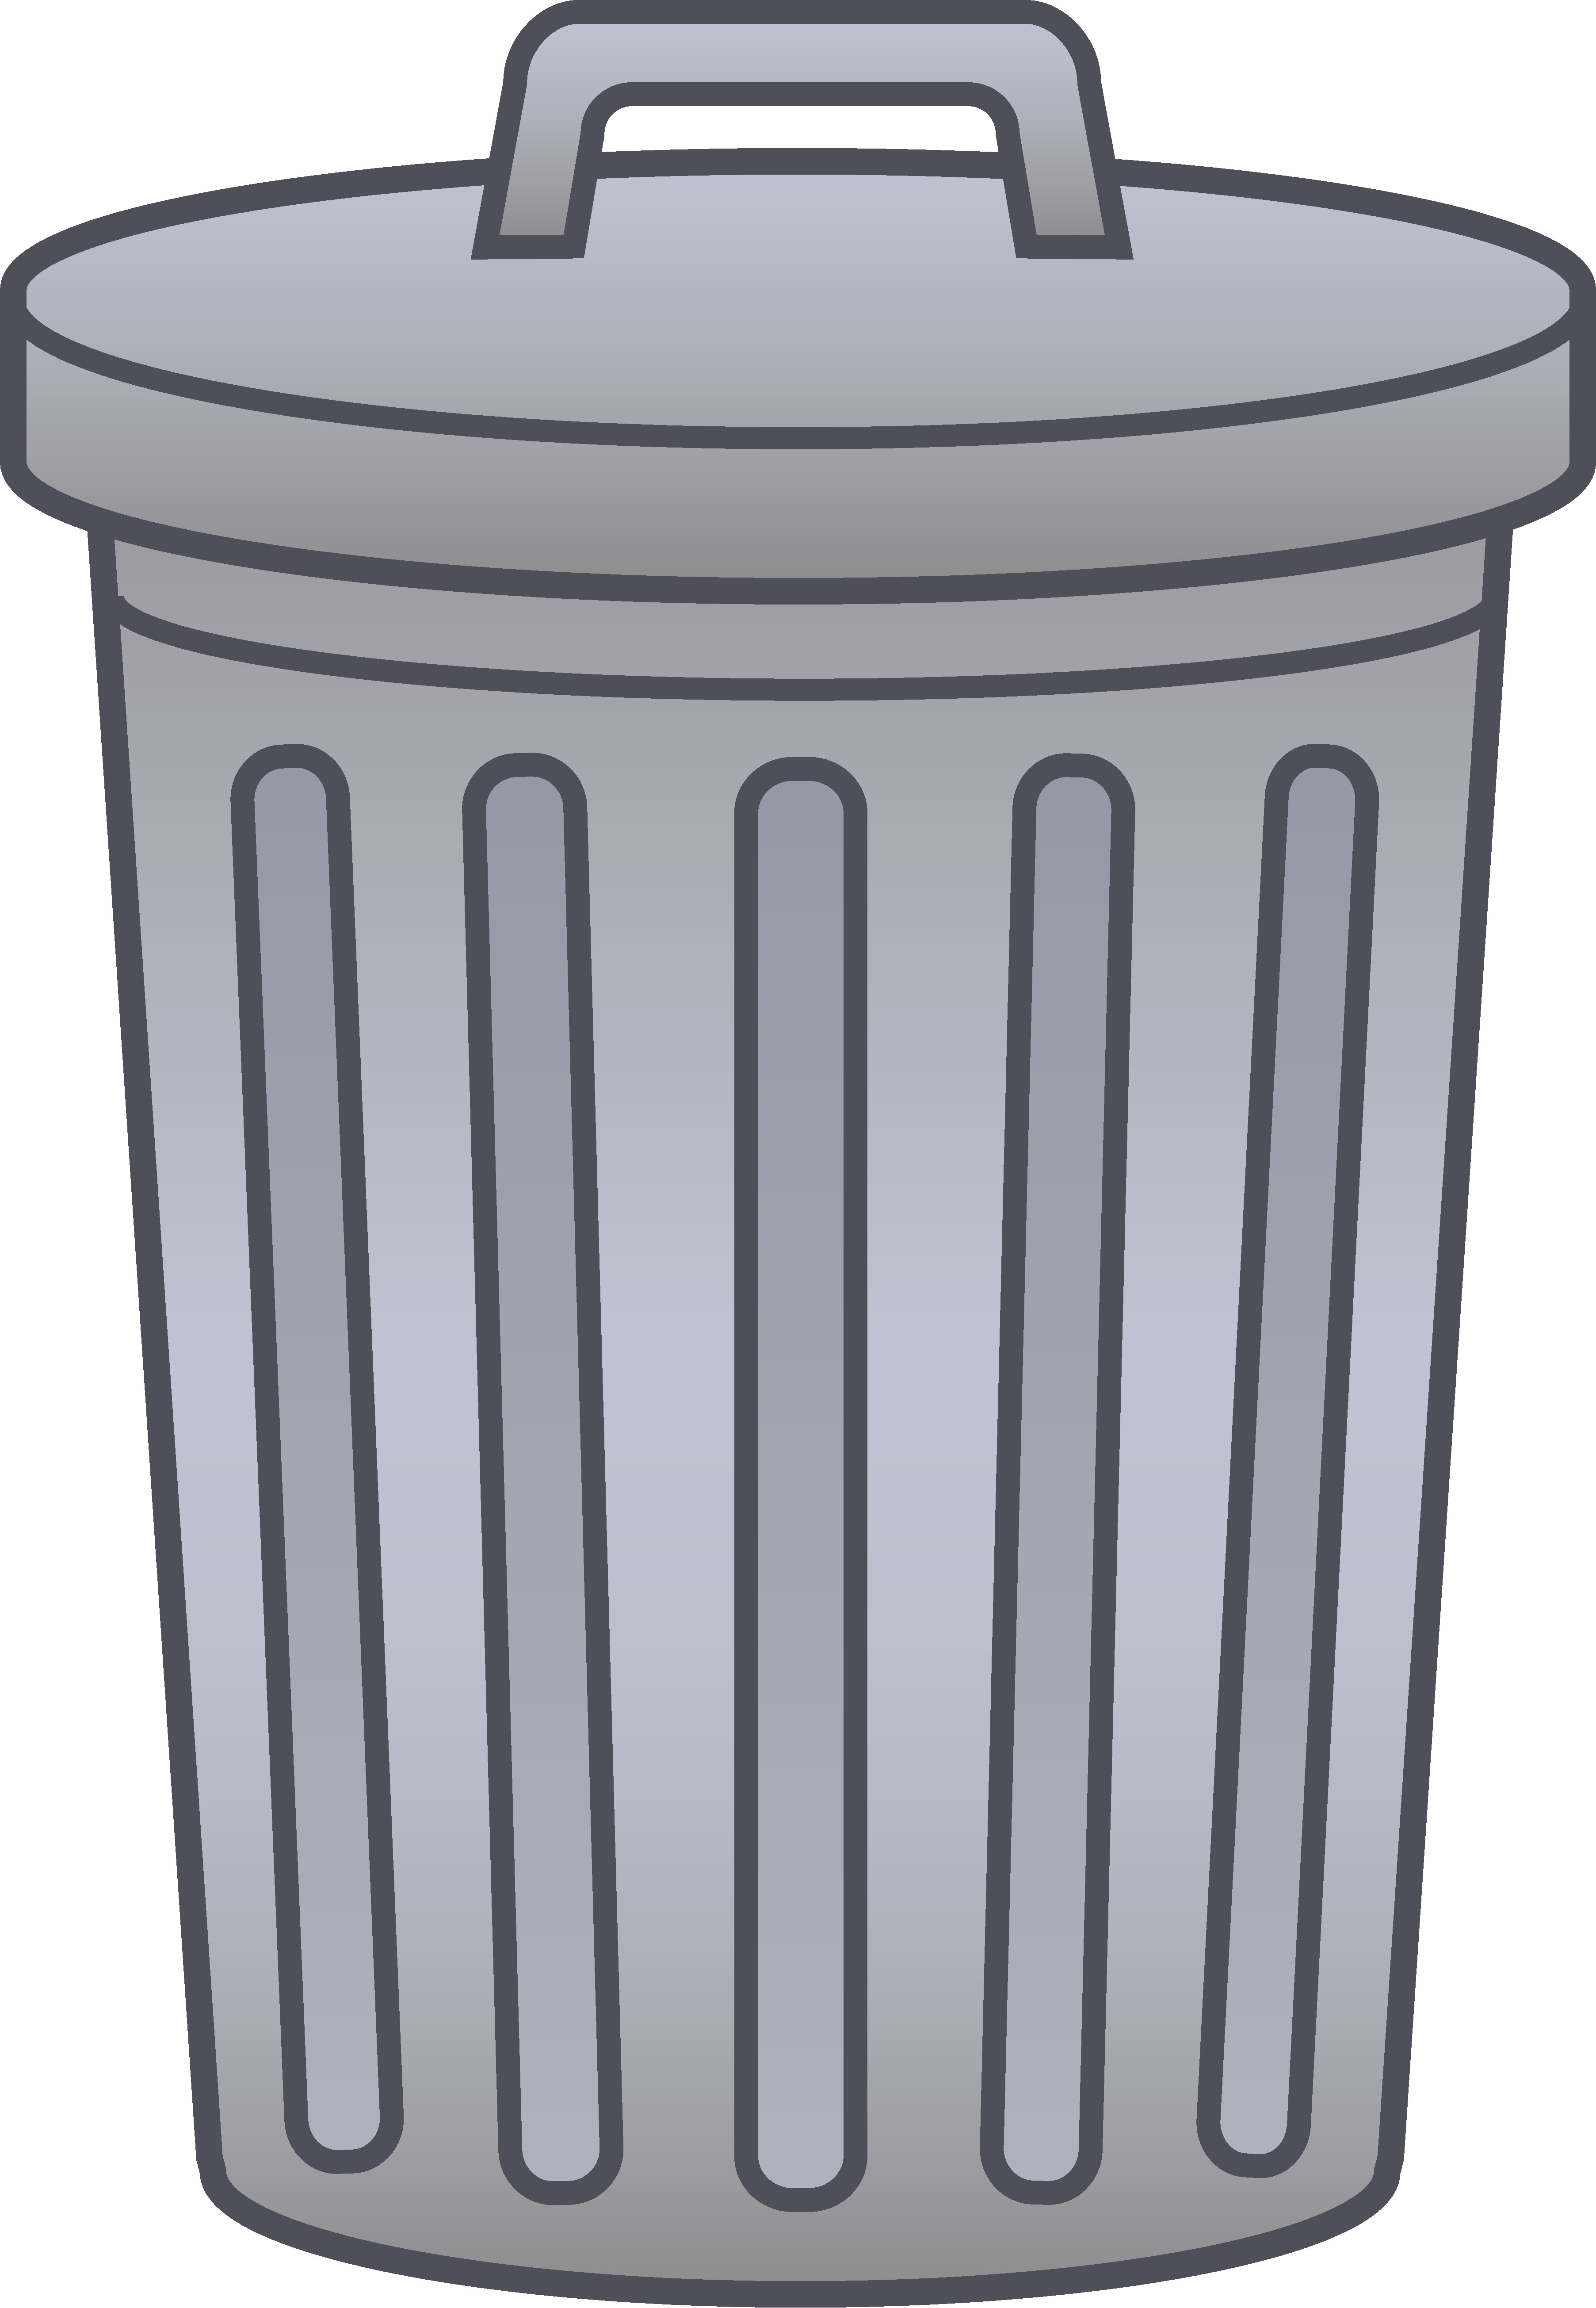 Animated dustbin clipart clipart images gallery for free.